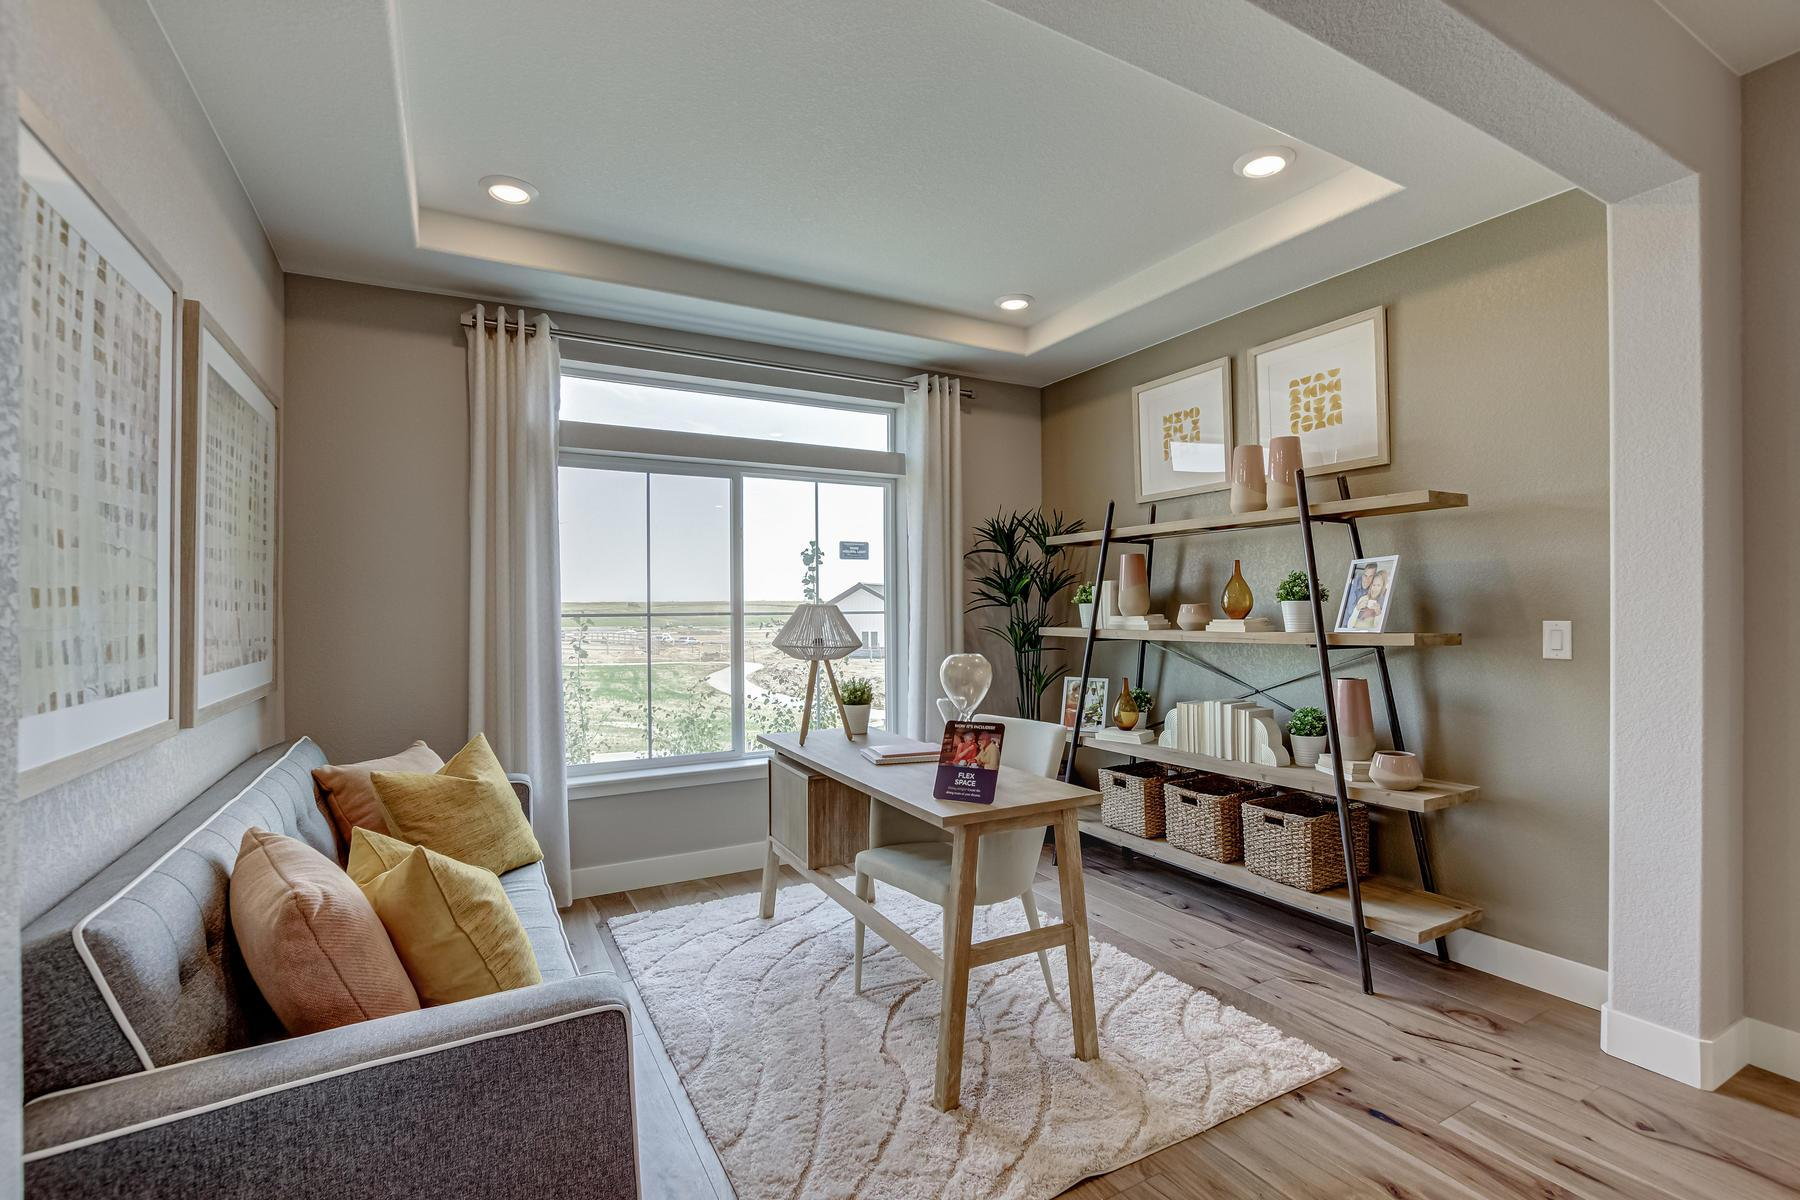 Living Area featured in the Harbor By OakwoodLife in Denver, CO